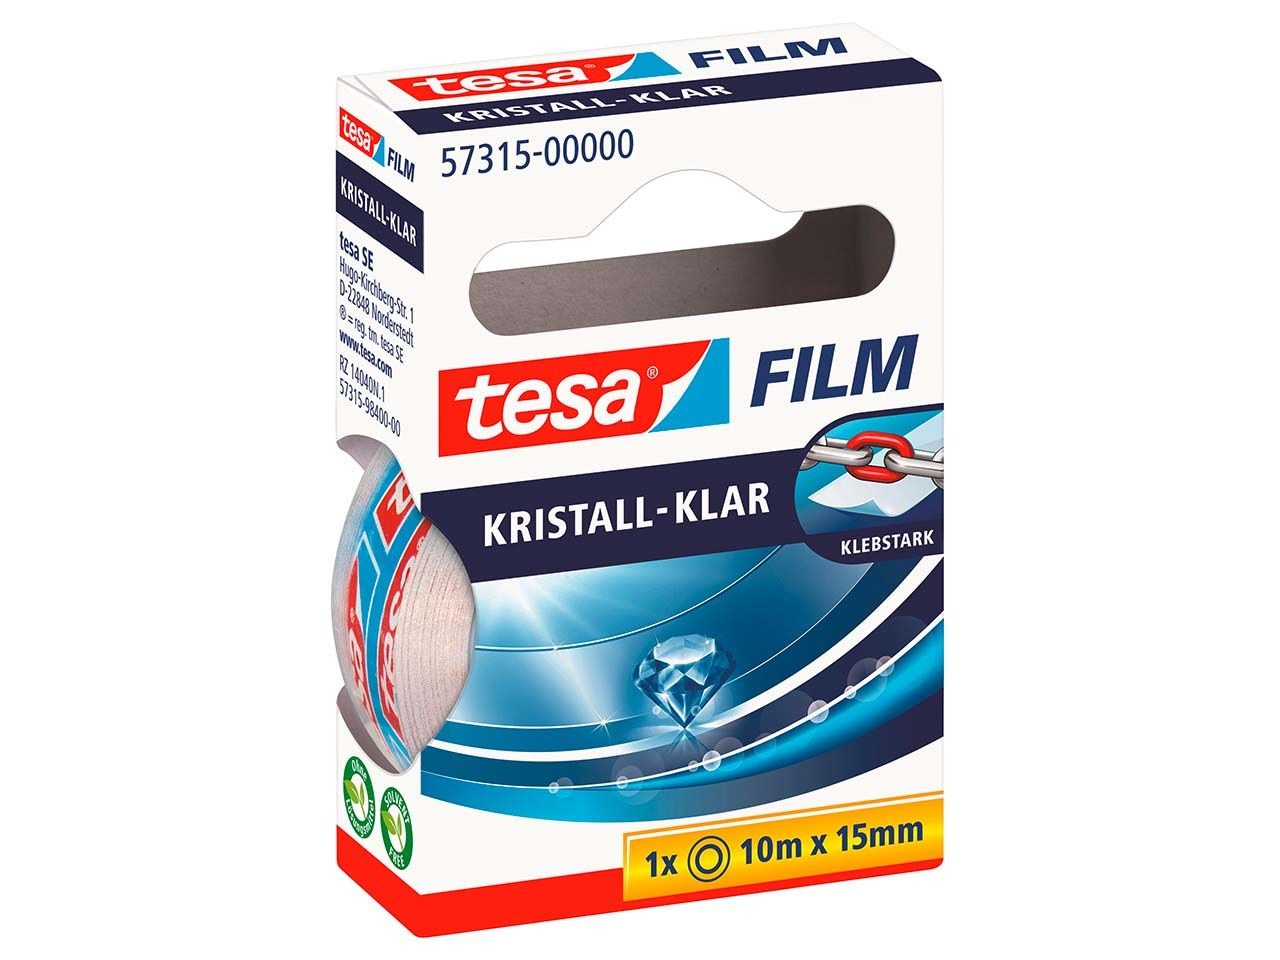 Tesa Multifilm 10mx15mm 57315-00000-01